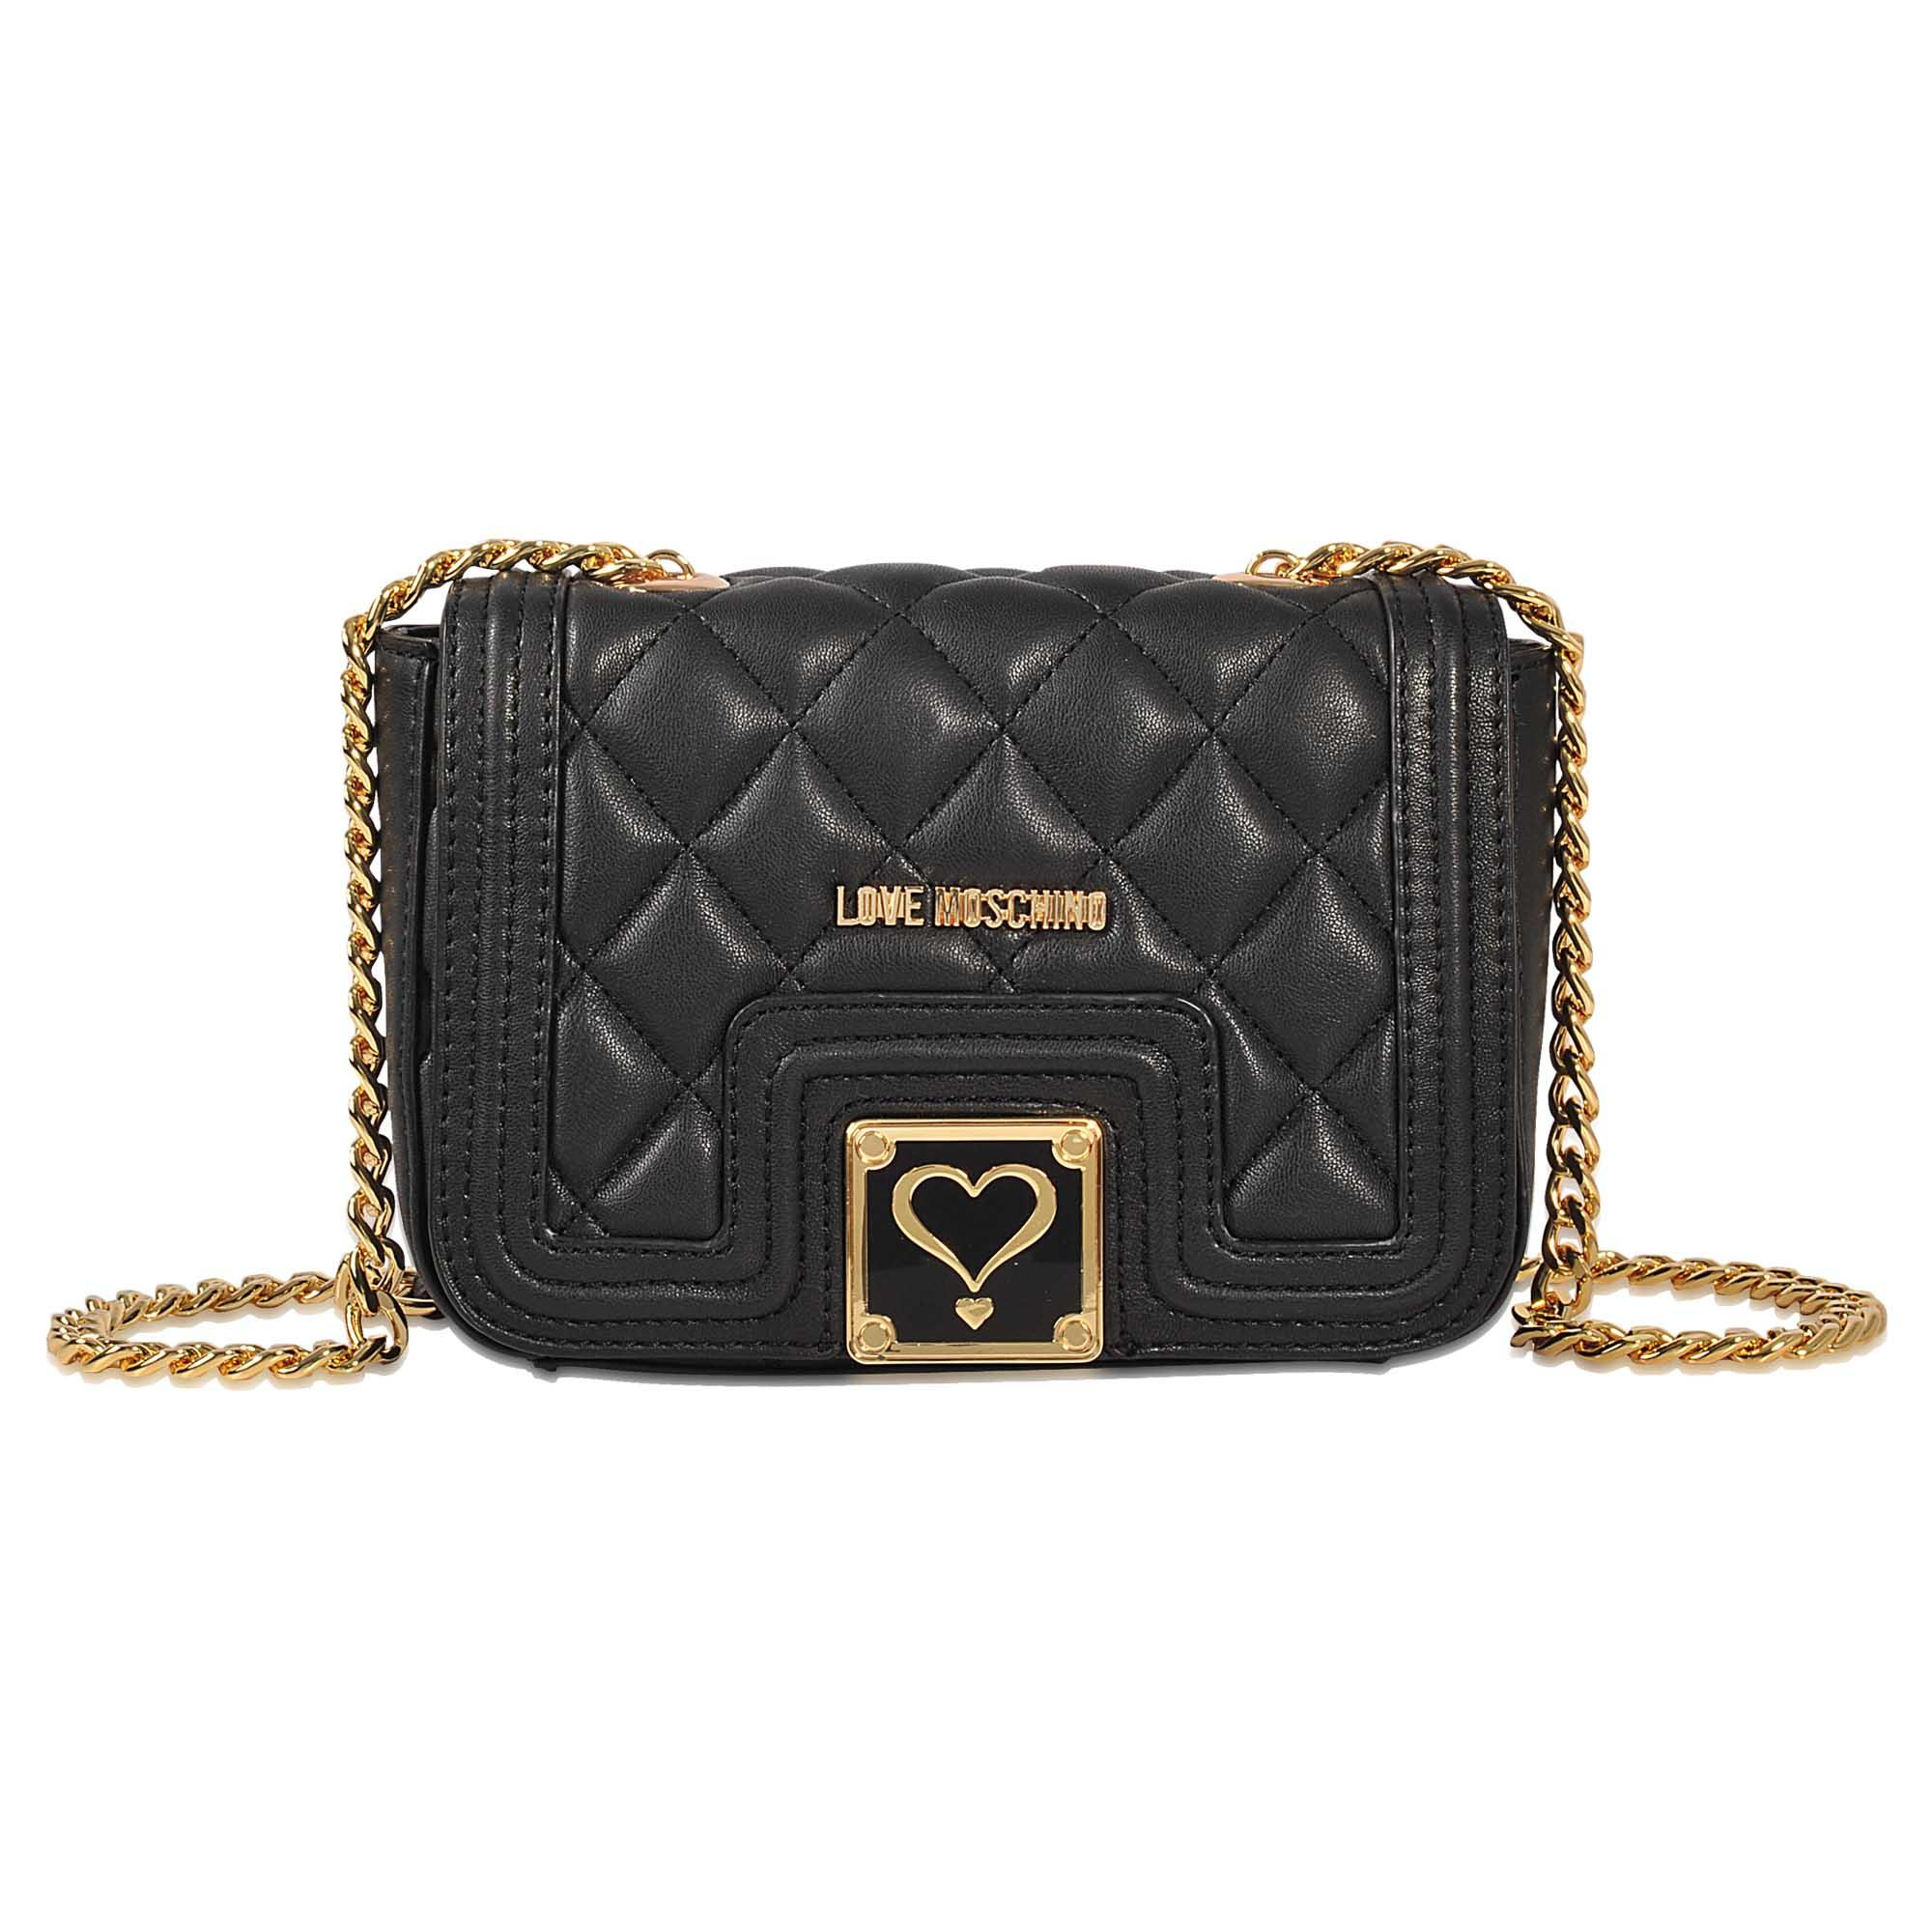 Love moschino Quilted Mini Flap Bag